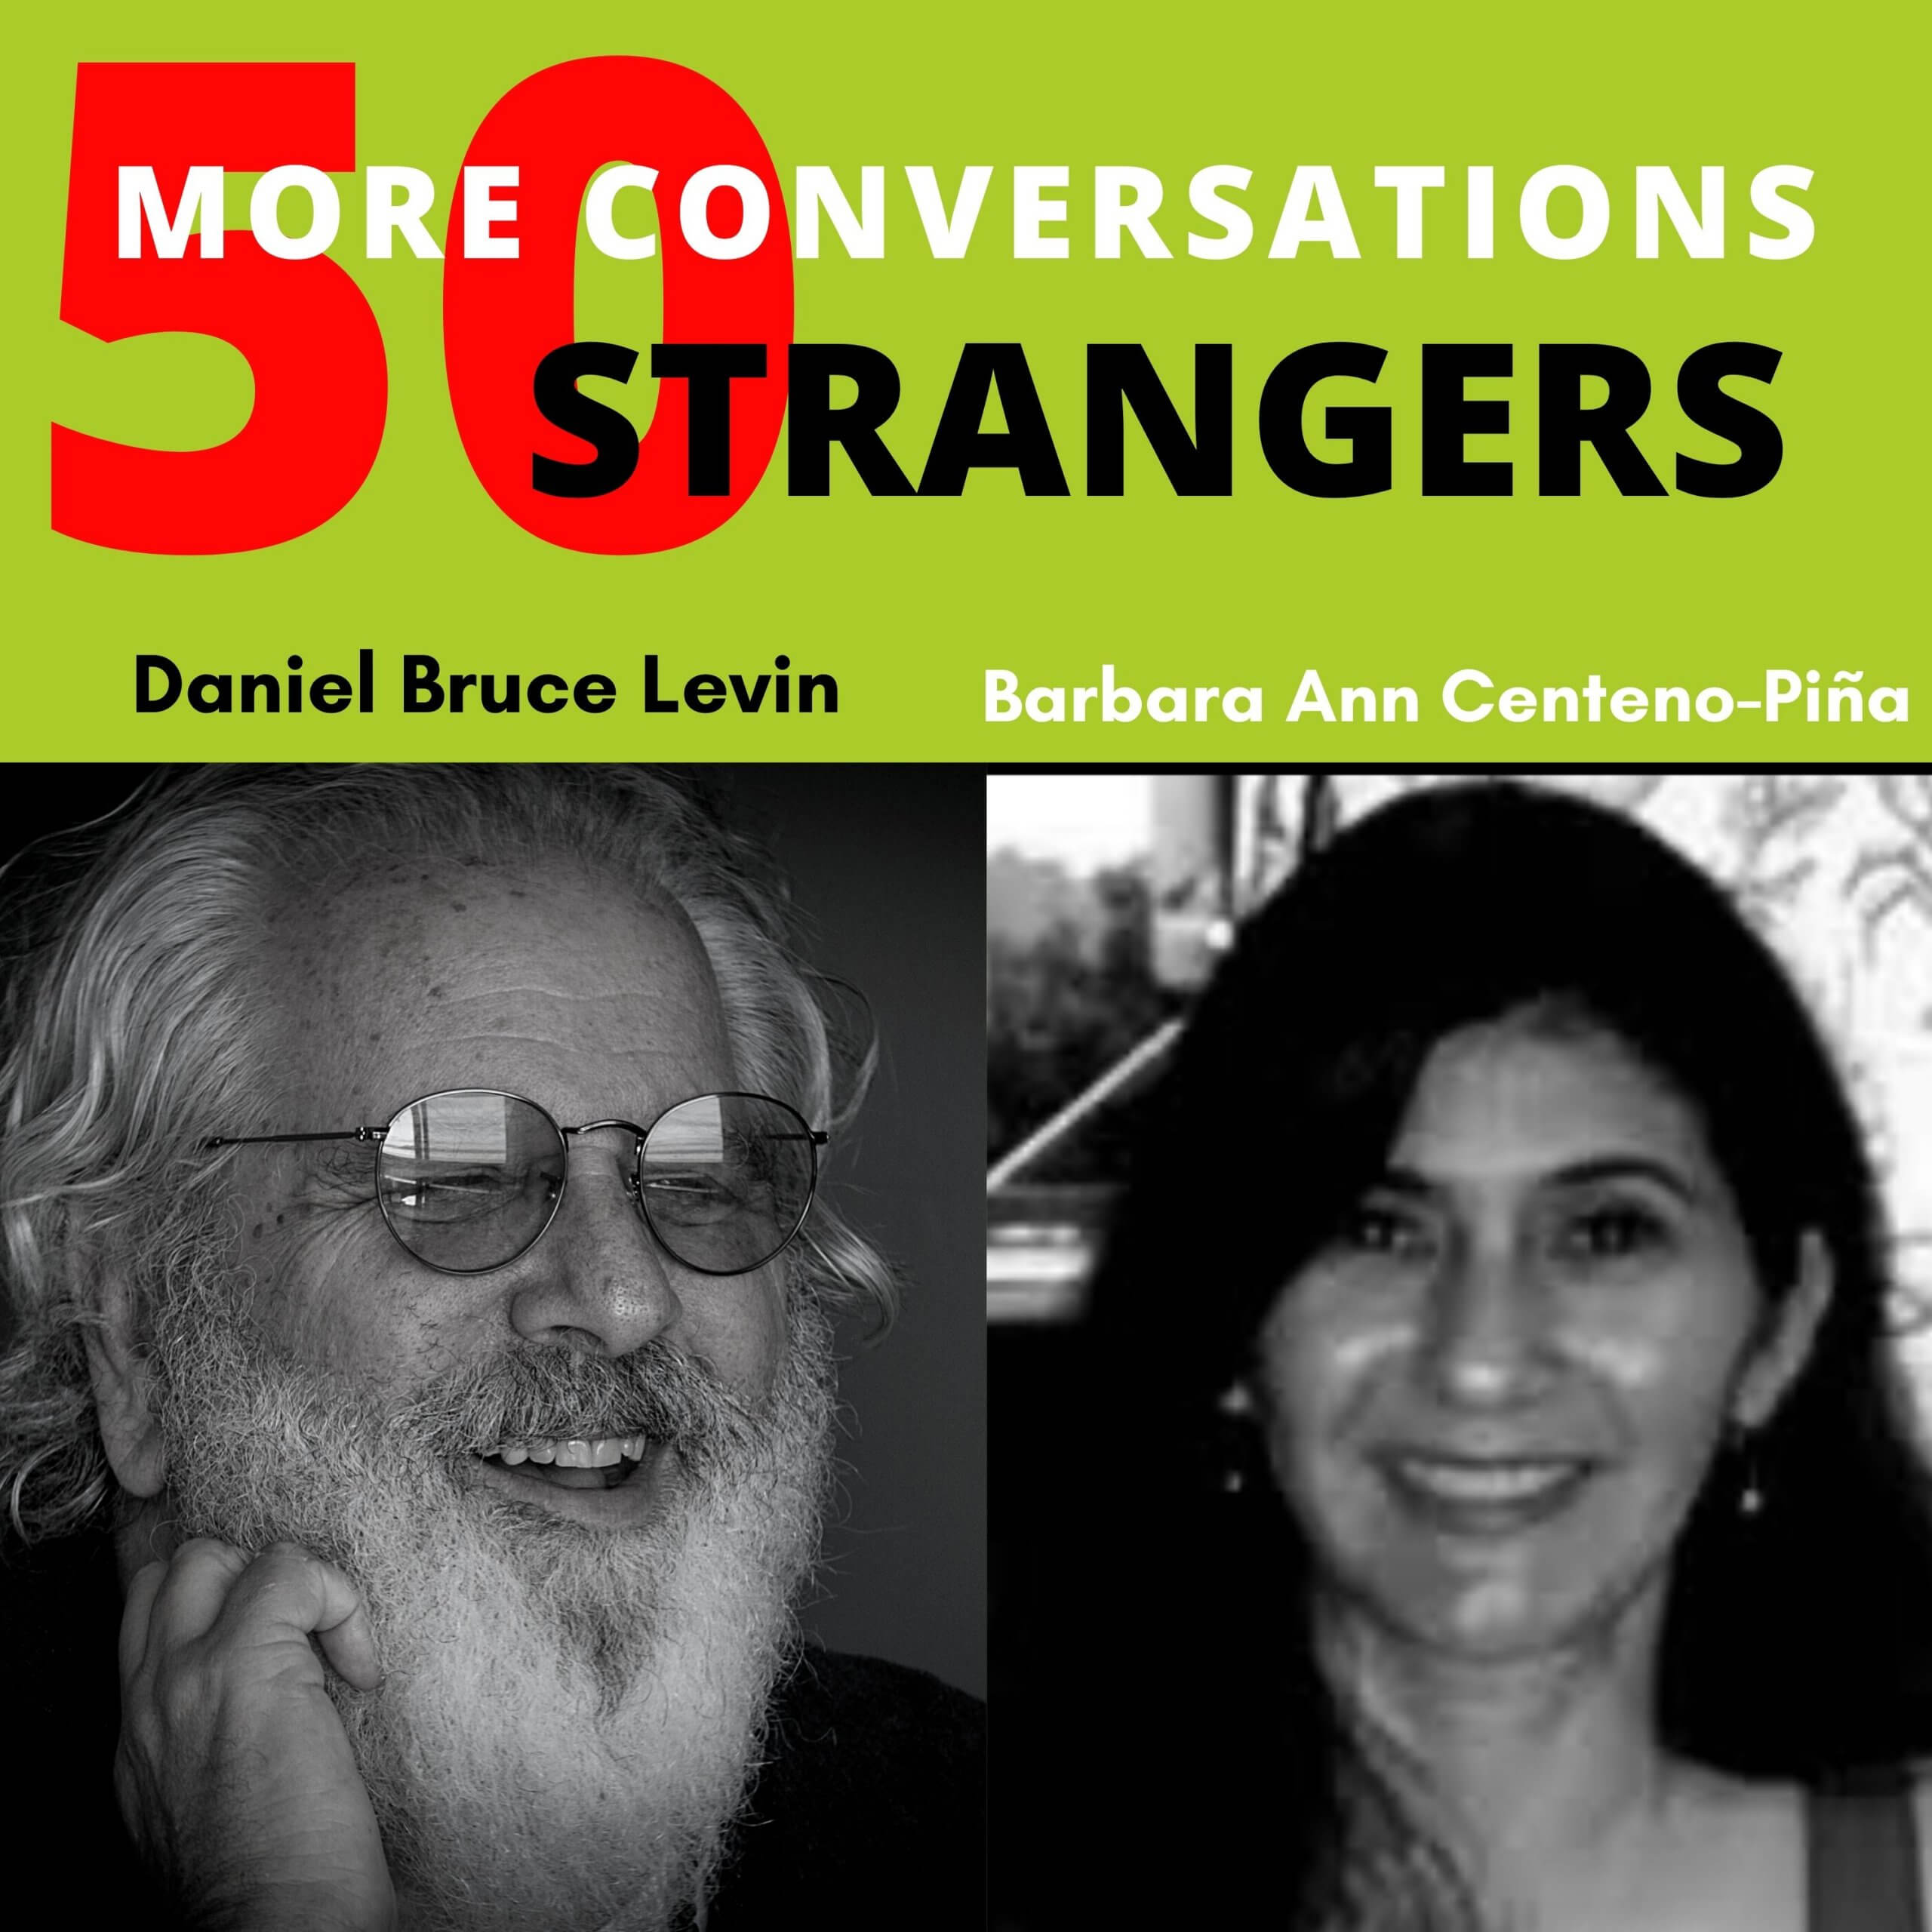 50 More Conversations with 50 More Strangers with Barbara Ann Centeno-Pina